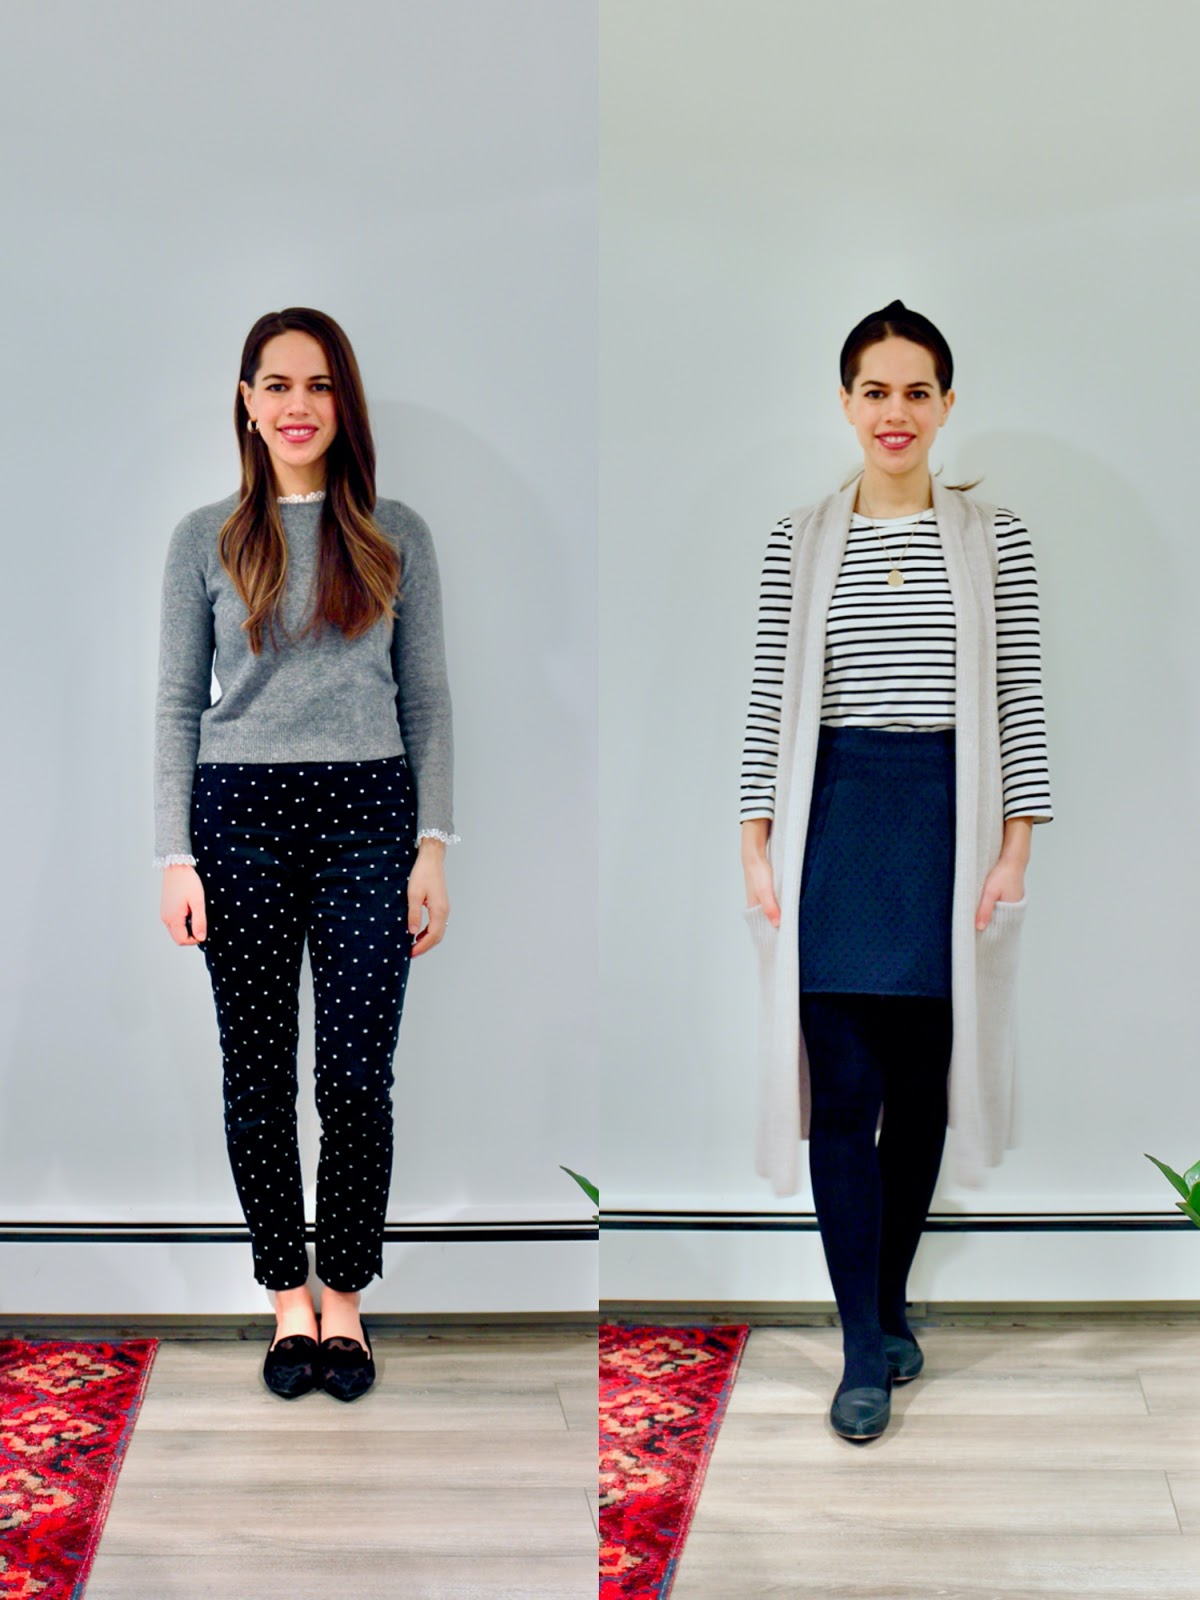 Jules in Flats - February Outfits Week 2 (Business Casual Winter Workwear on a Budget)